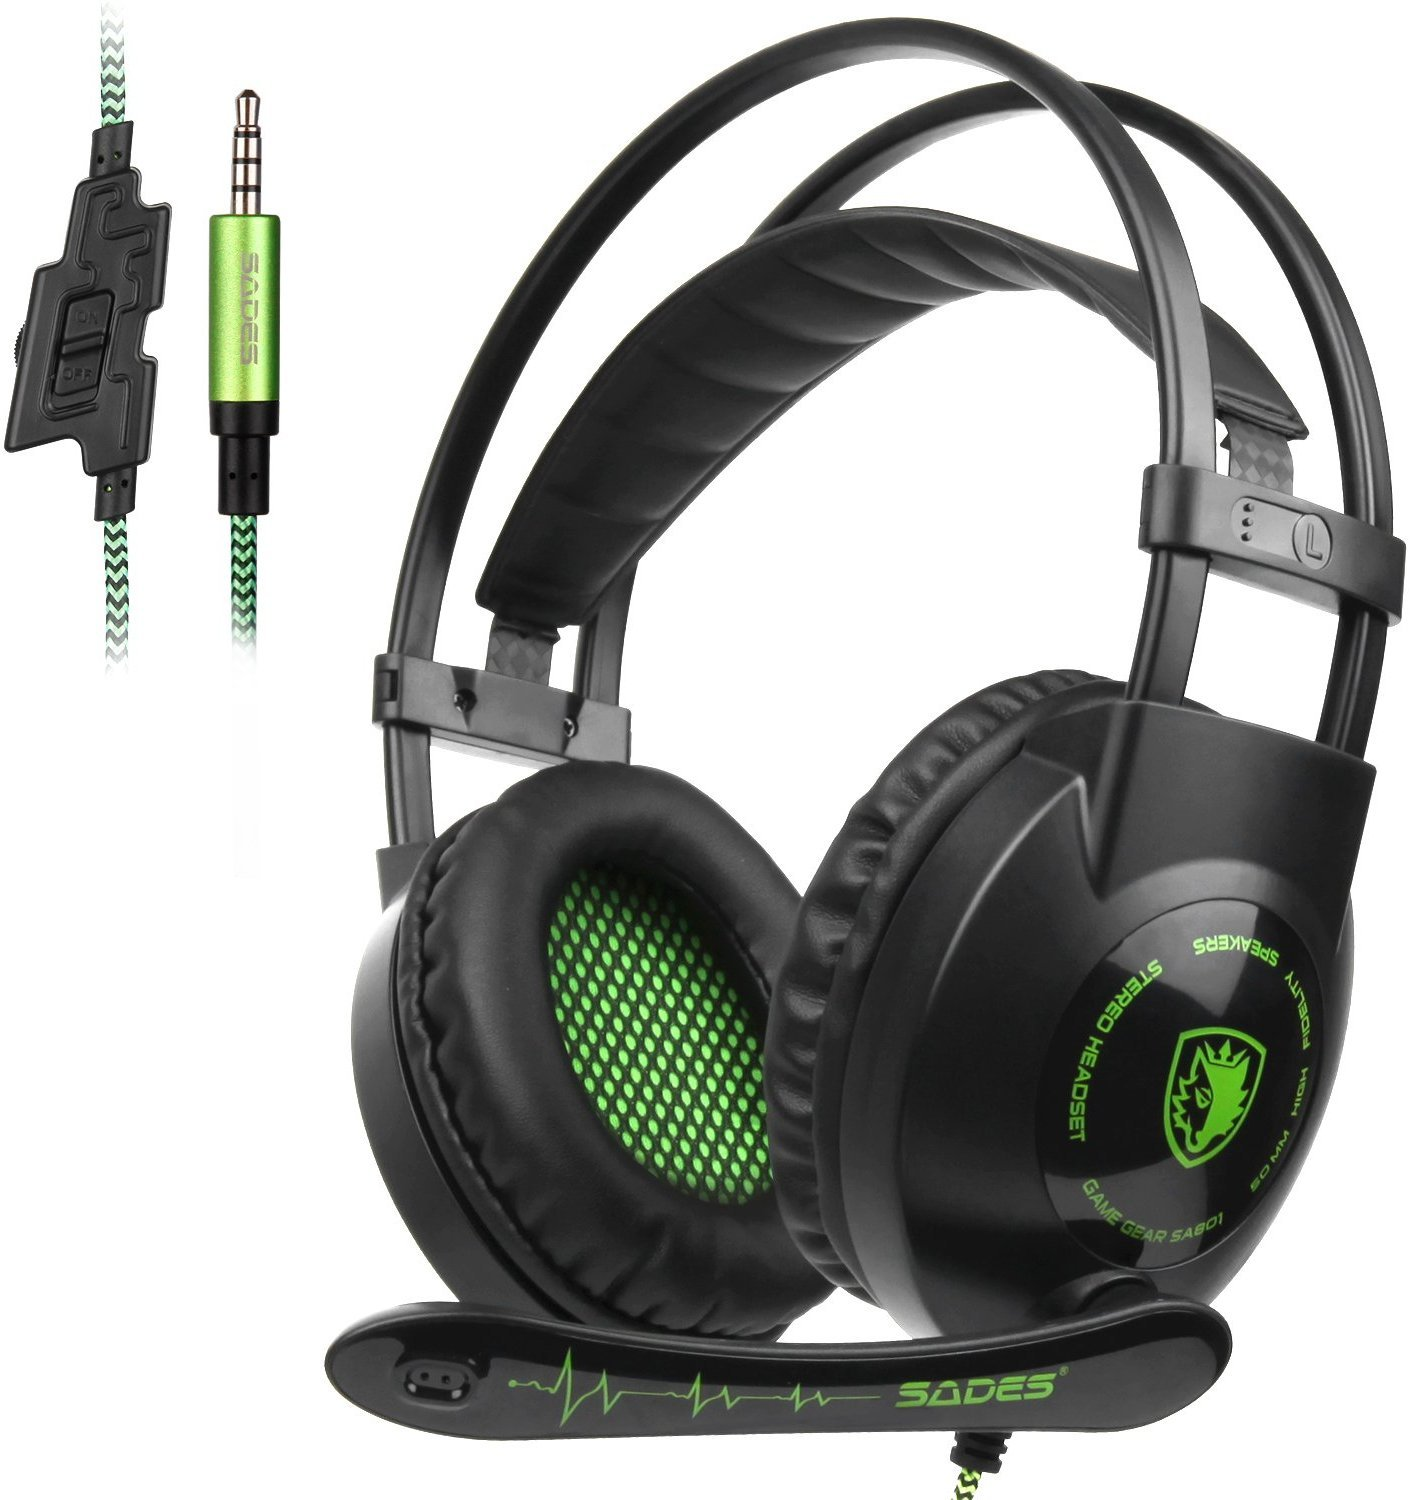 Amazon.com: Sades SA801 Over-Ear Stereo Gaming Headset with Microphone  Noise Isolation Xbox One PC Mac Tablets PS4 Laptop Phone-Black Green:  Computers & ...